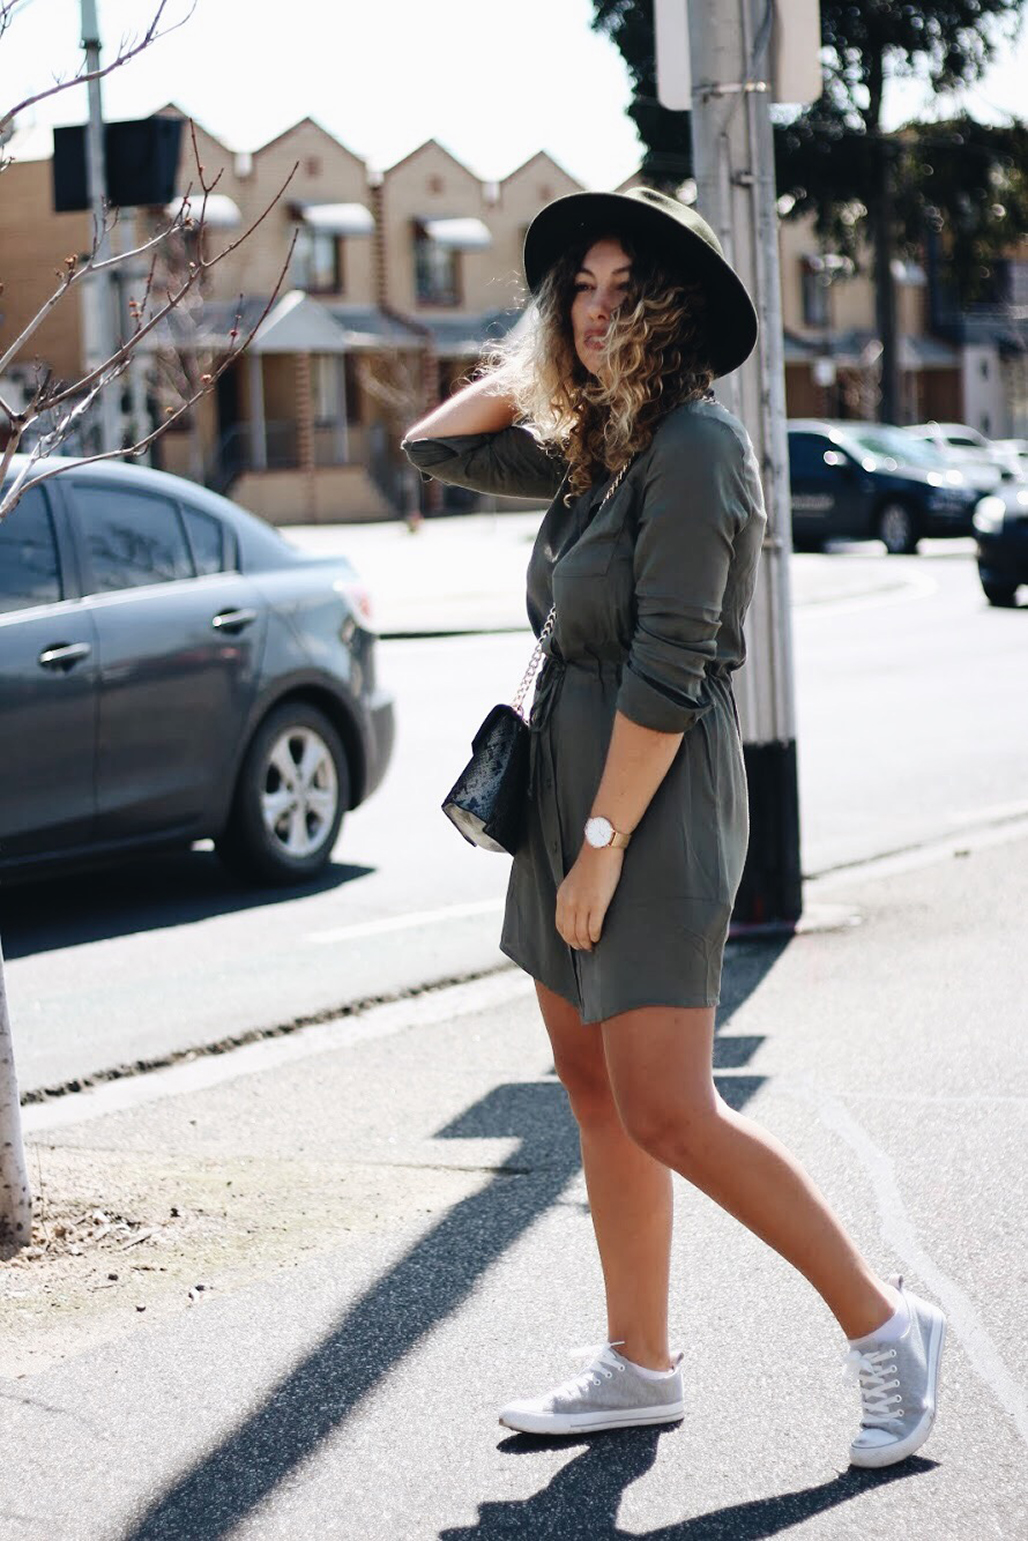 fashion-mode-look-winter-outfit-inspiration-blogger